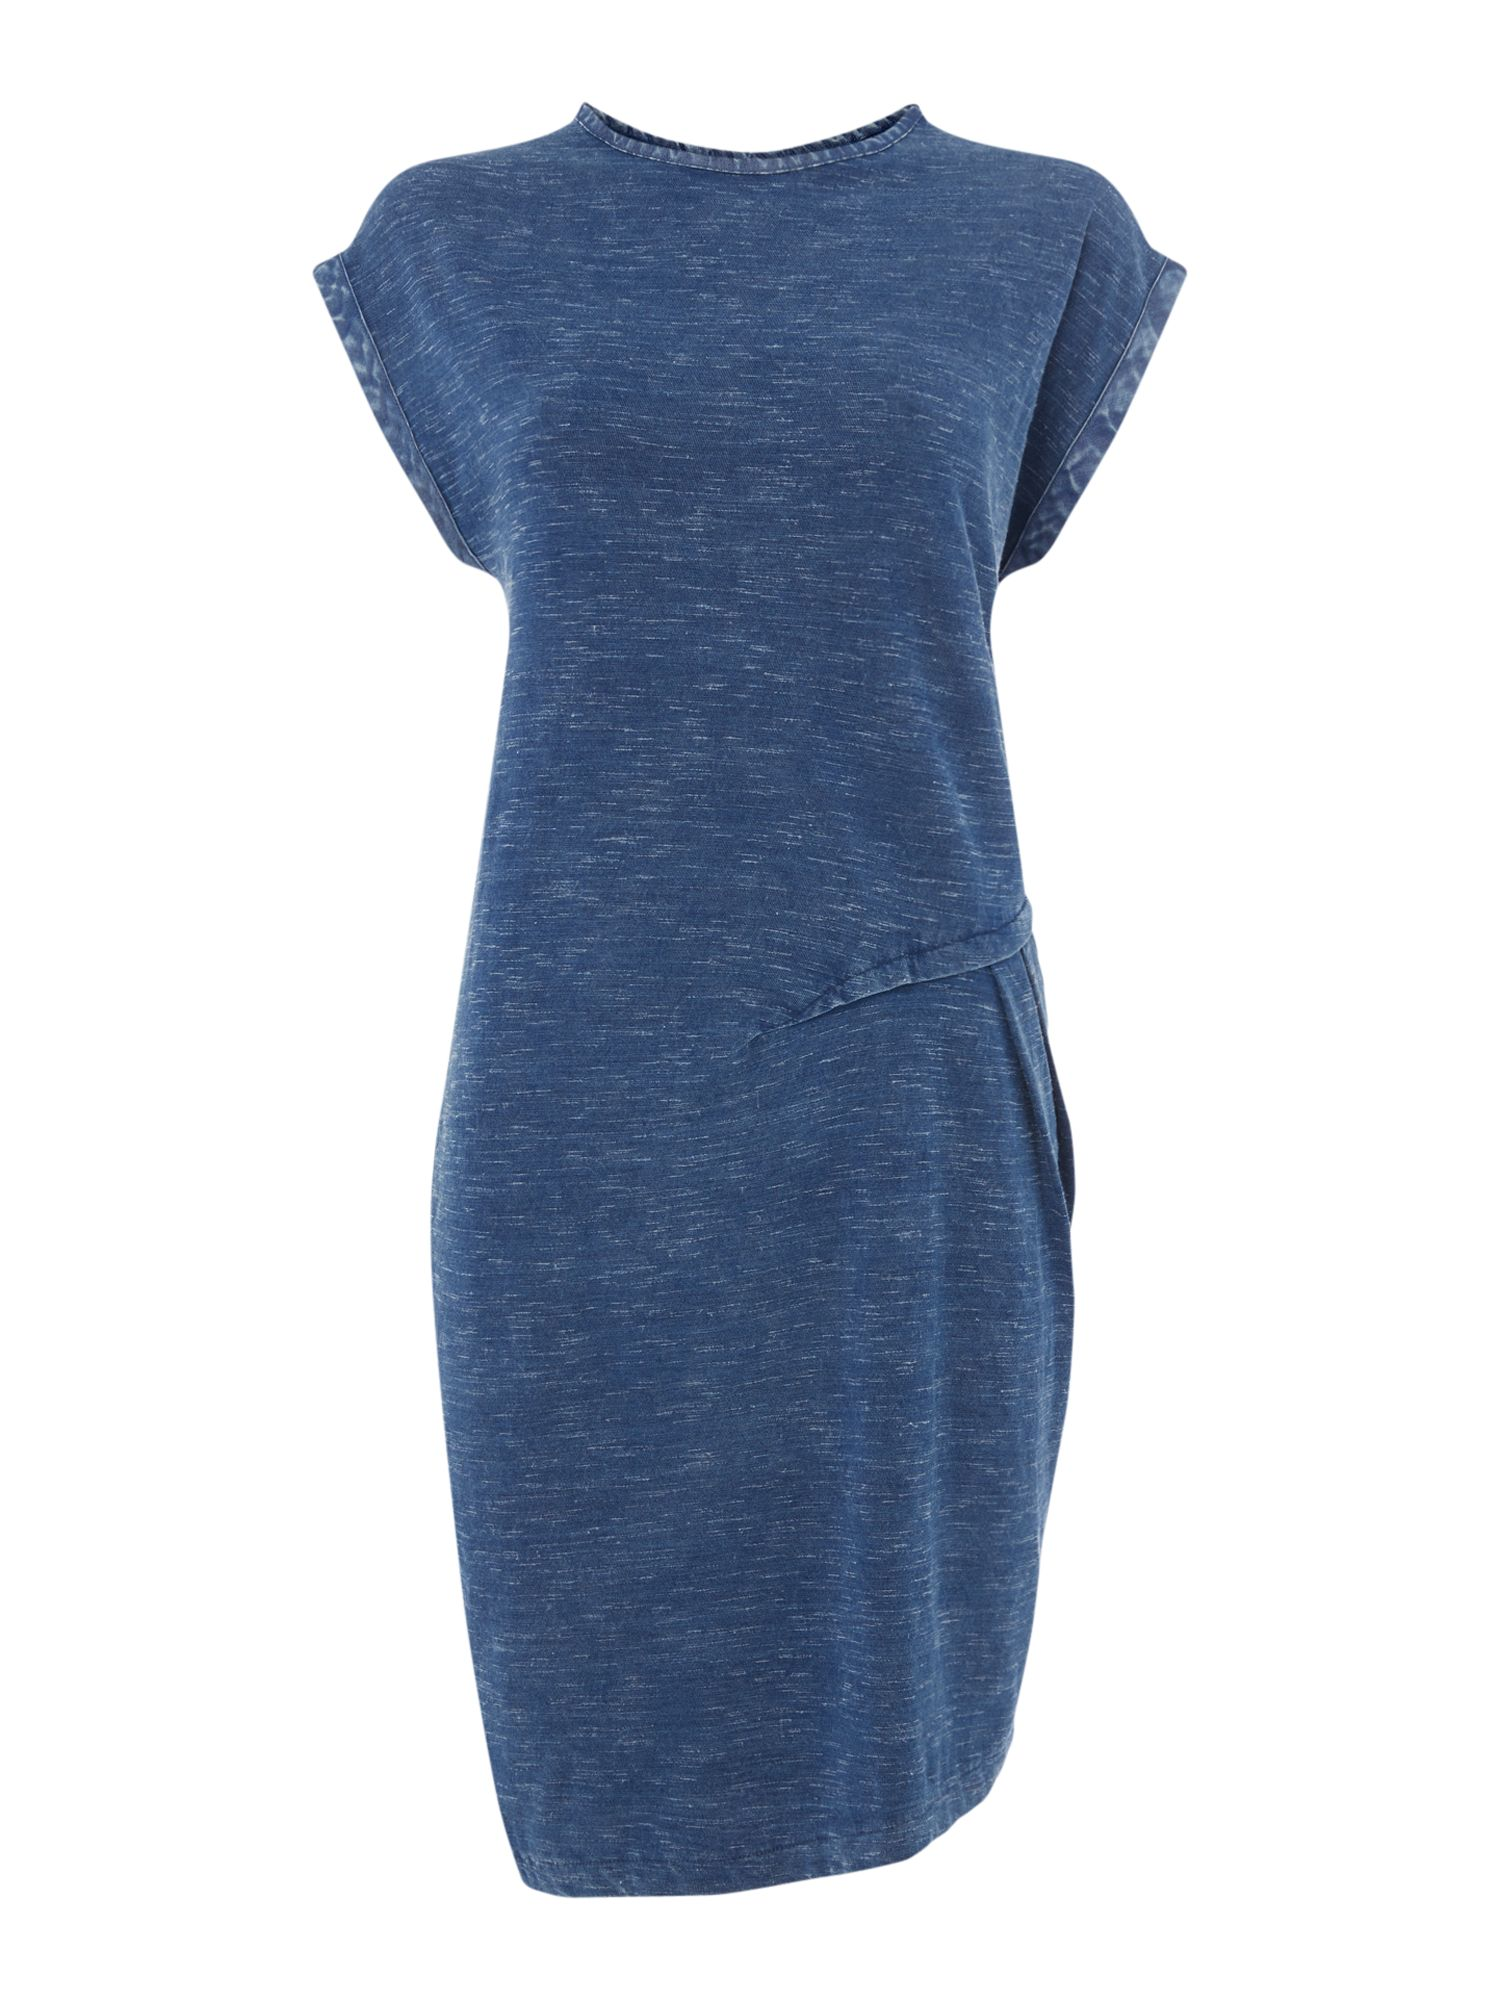 Maison De Nimes Denim look jersey ruched dress, Indigo